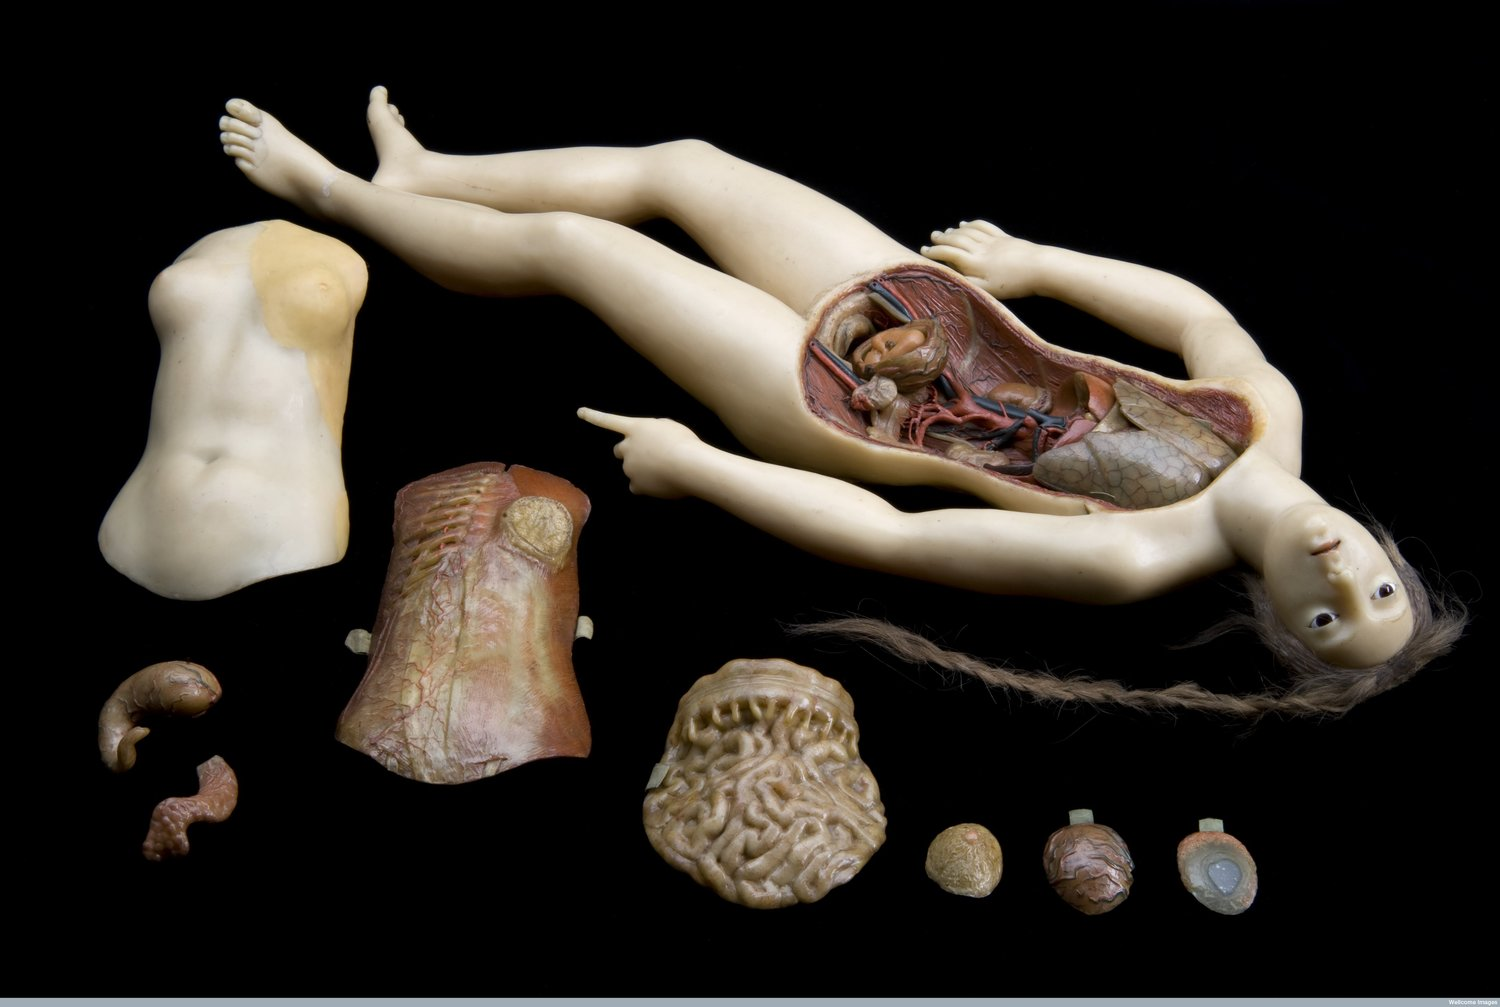 ANATOMISATION & DISSECTION — HARNESSING THE POWER OF THE CRIMINAL CORPSE